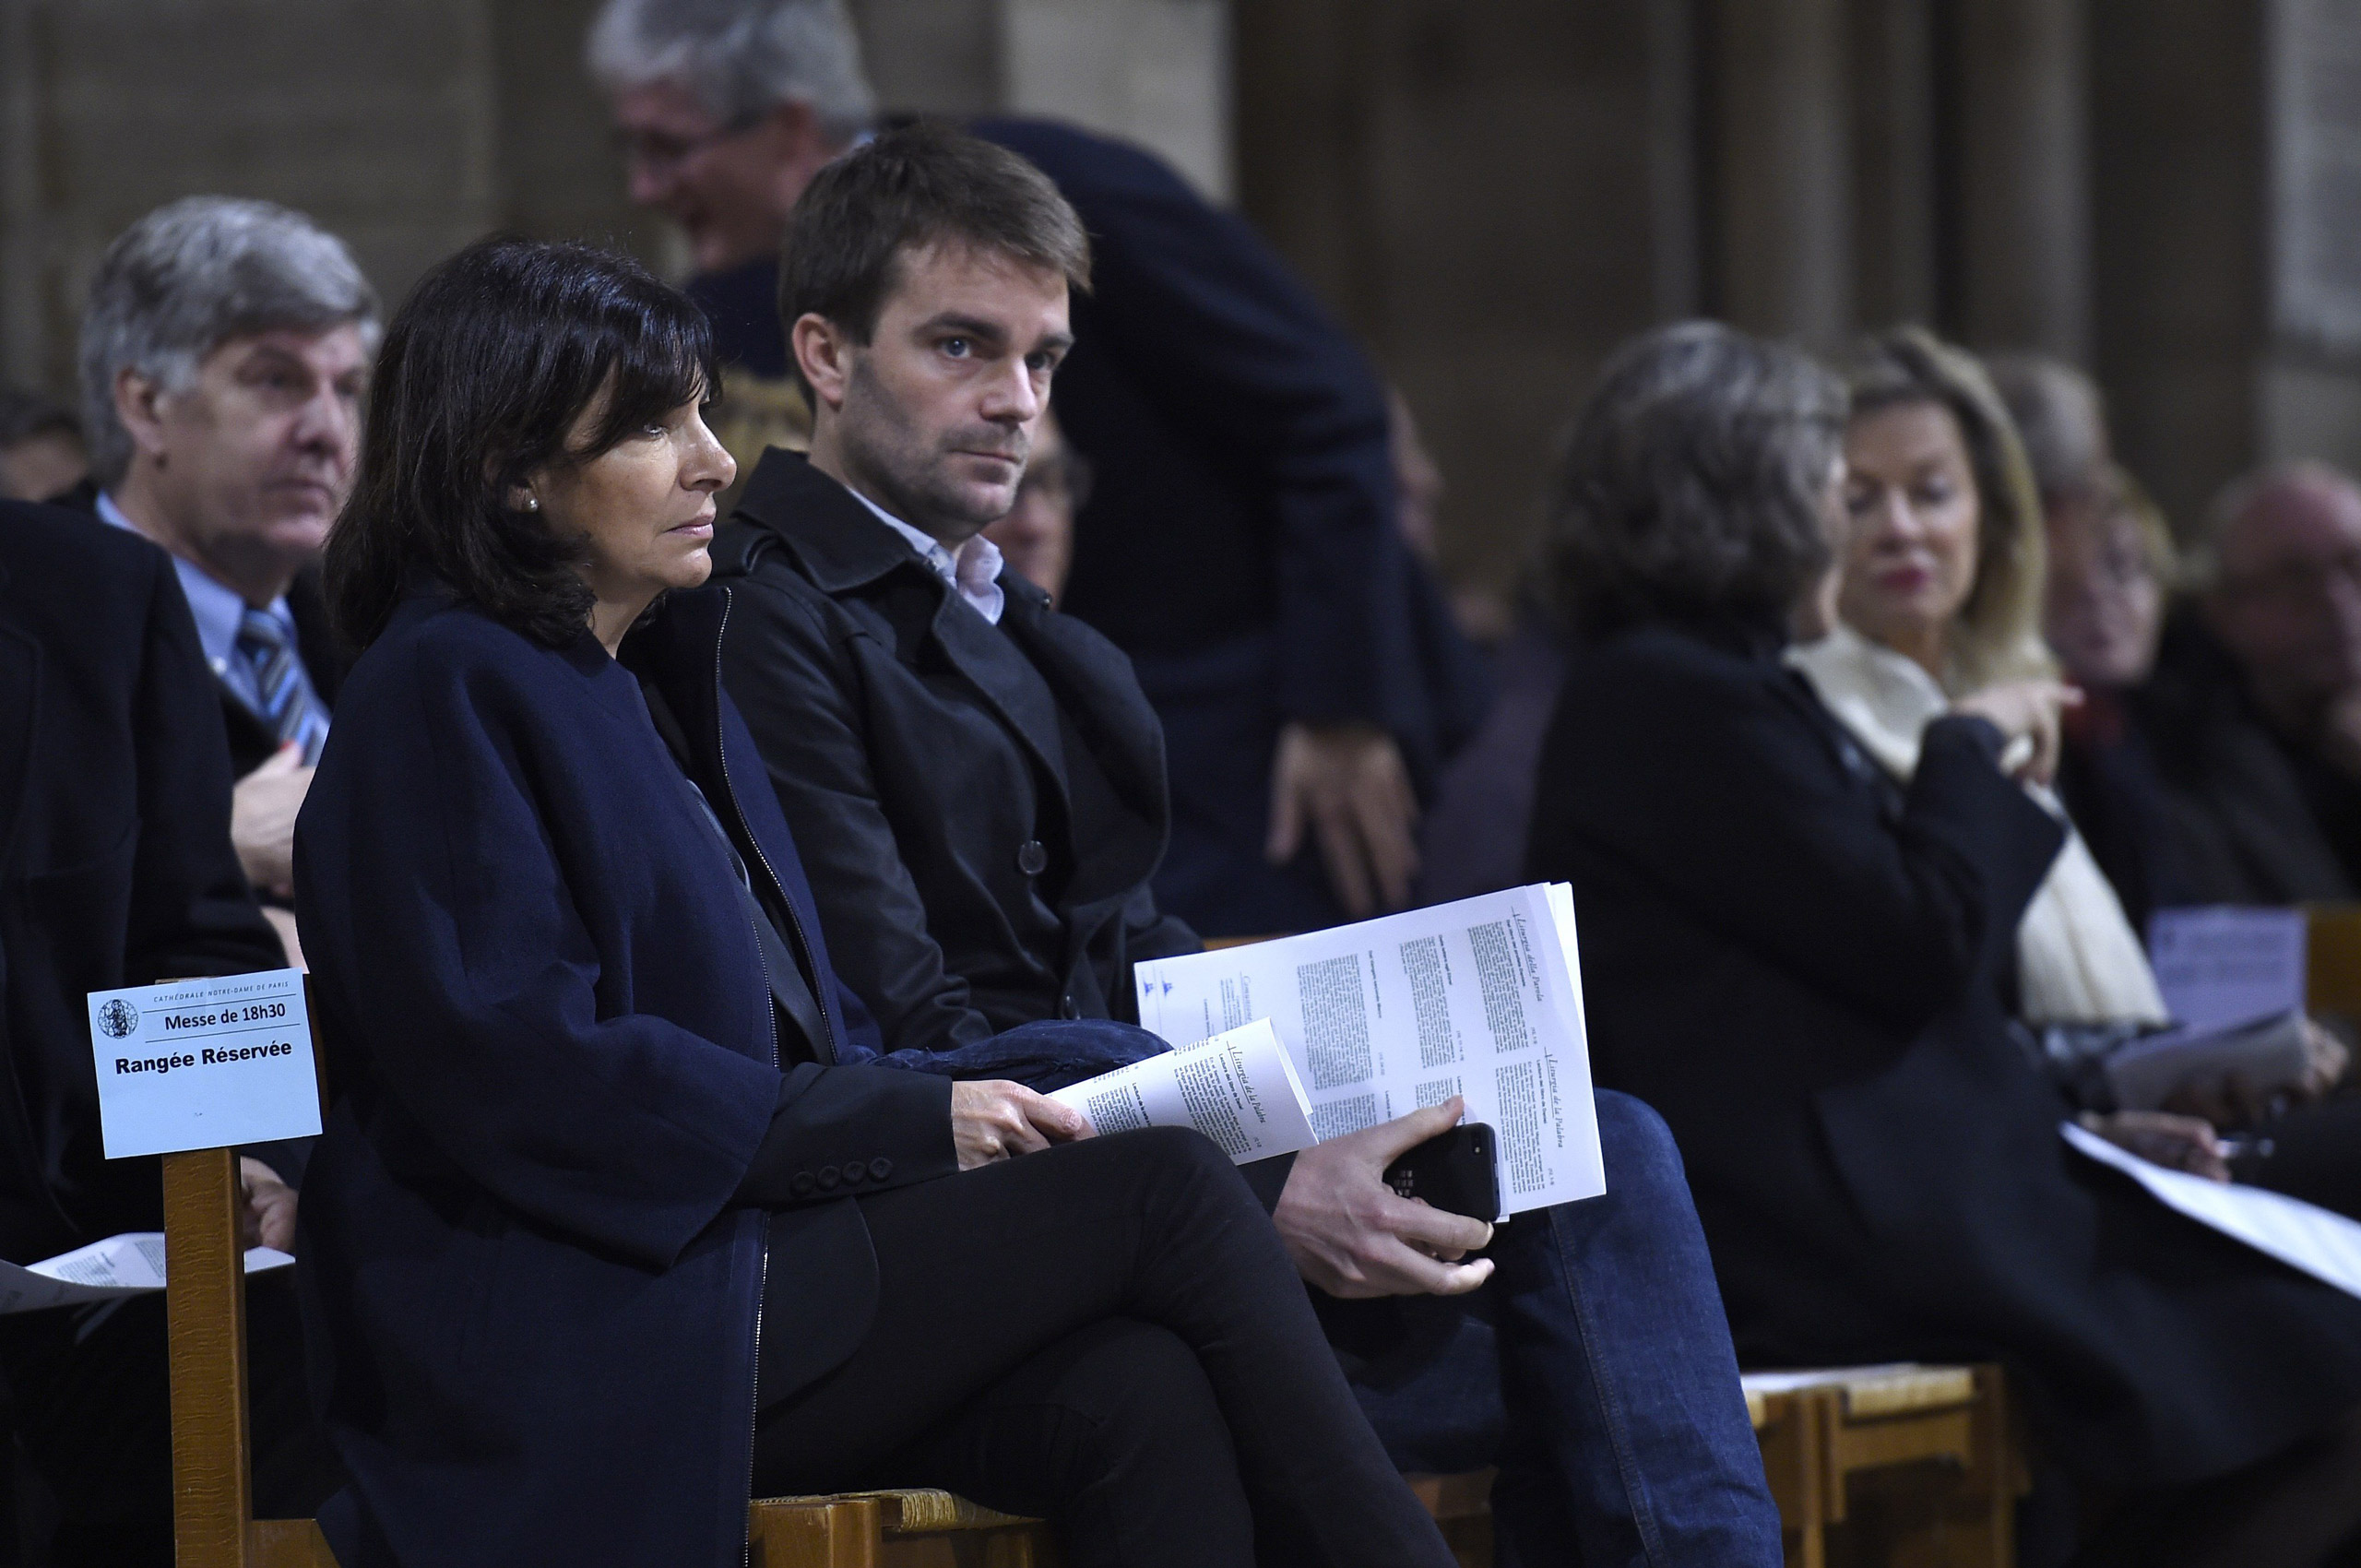 Paris mayor Anne Hidalgo and Deputy-Mayor Bruno Julliard attend a ceremony in memory of the victims of the terrorist attacks at Notre Dame cathedral in Paris on Nov. 15, 2015.